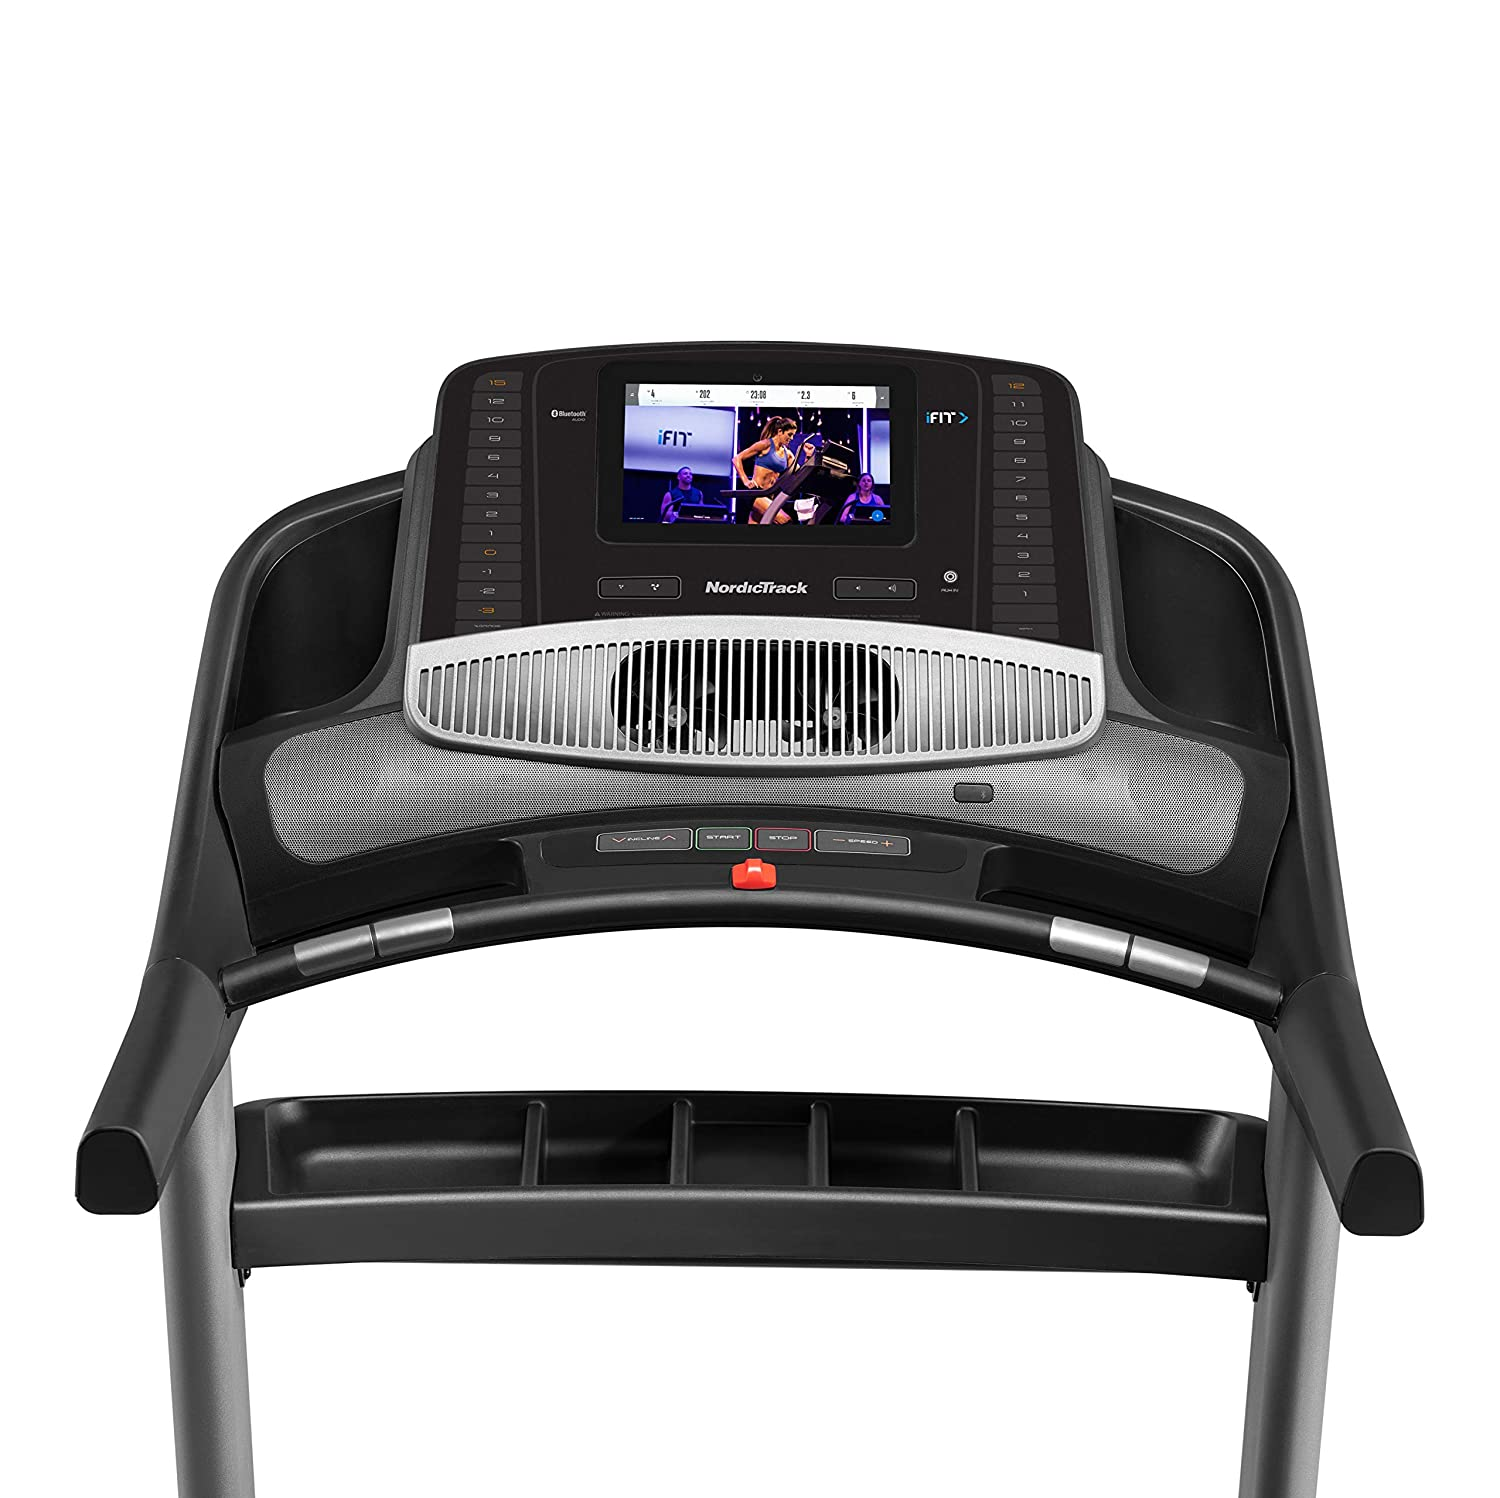 NordicTrack Commercial Treadmill Series with 1 Year iFit Subscription 1750 and 2950 Models